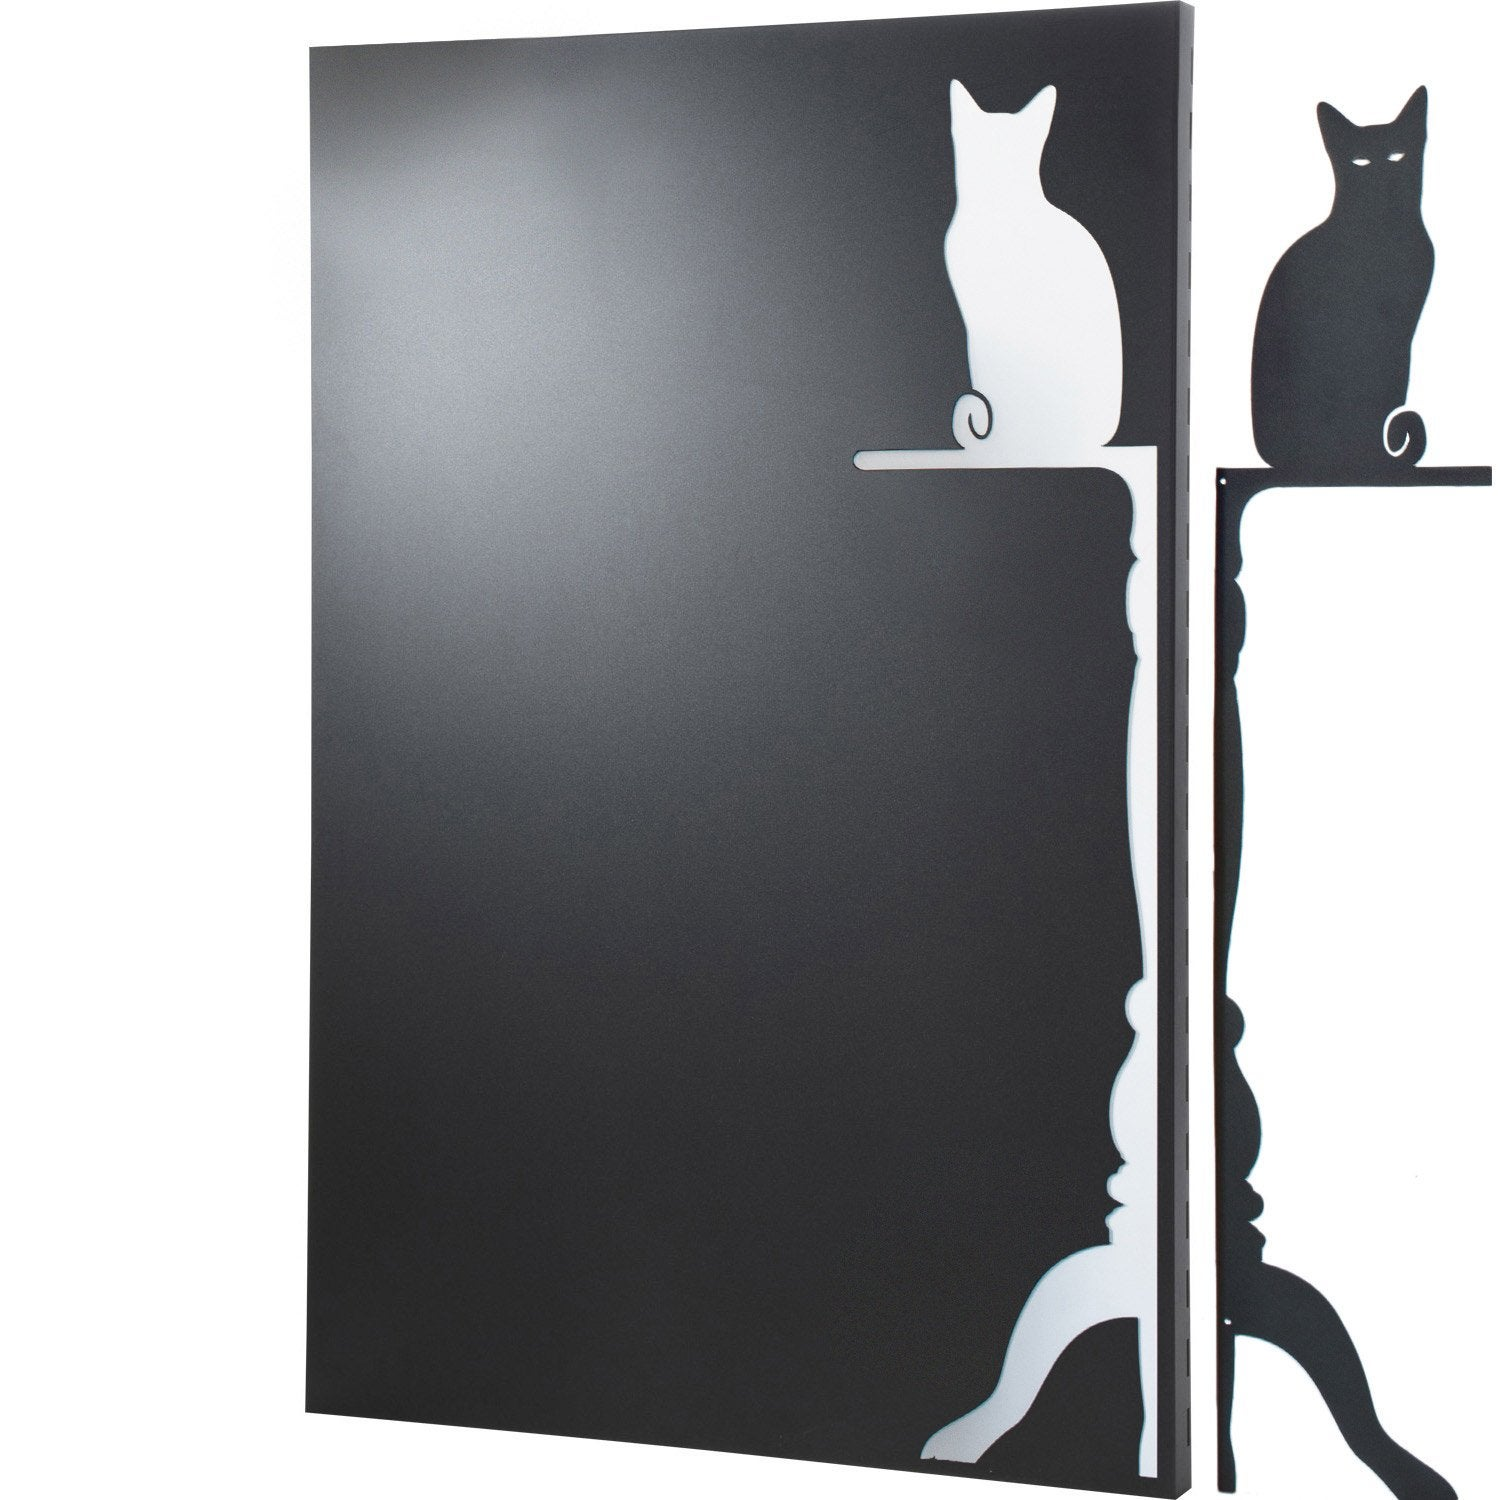 plaque de protection murale equation katy x cm leroy merlin. Black Bedroom Furniture Sets. Home Design Ideas